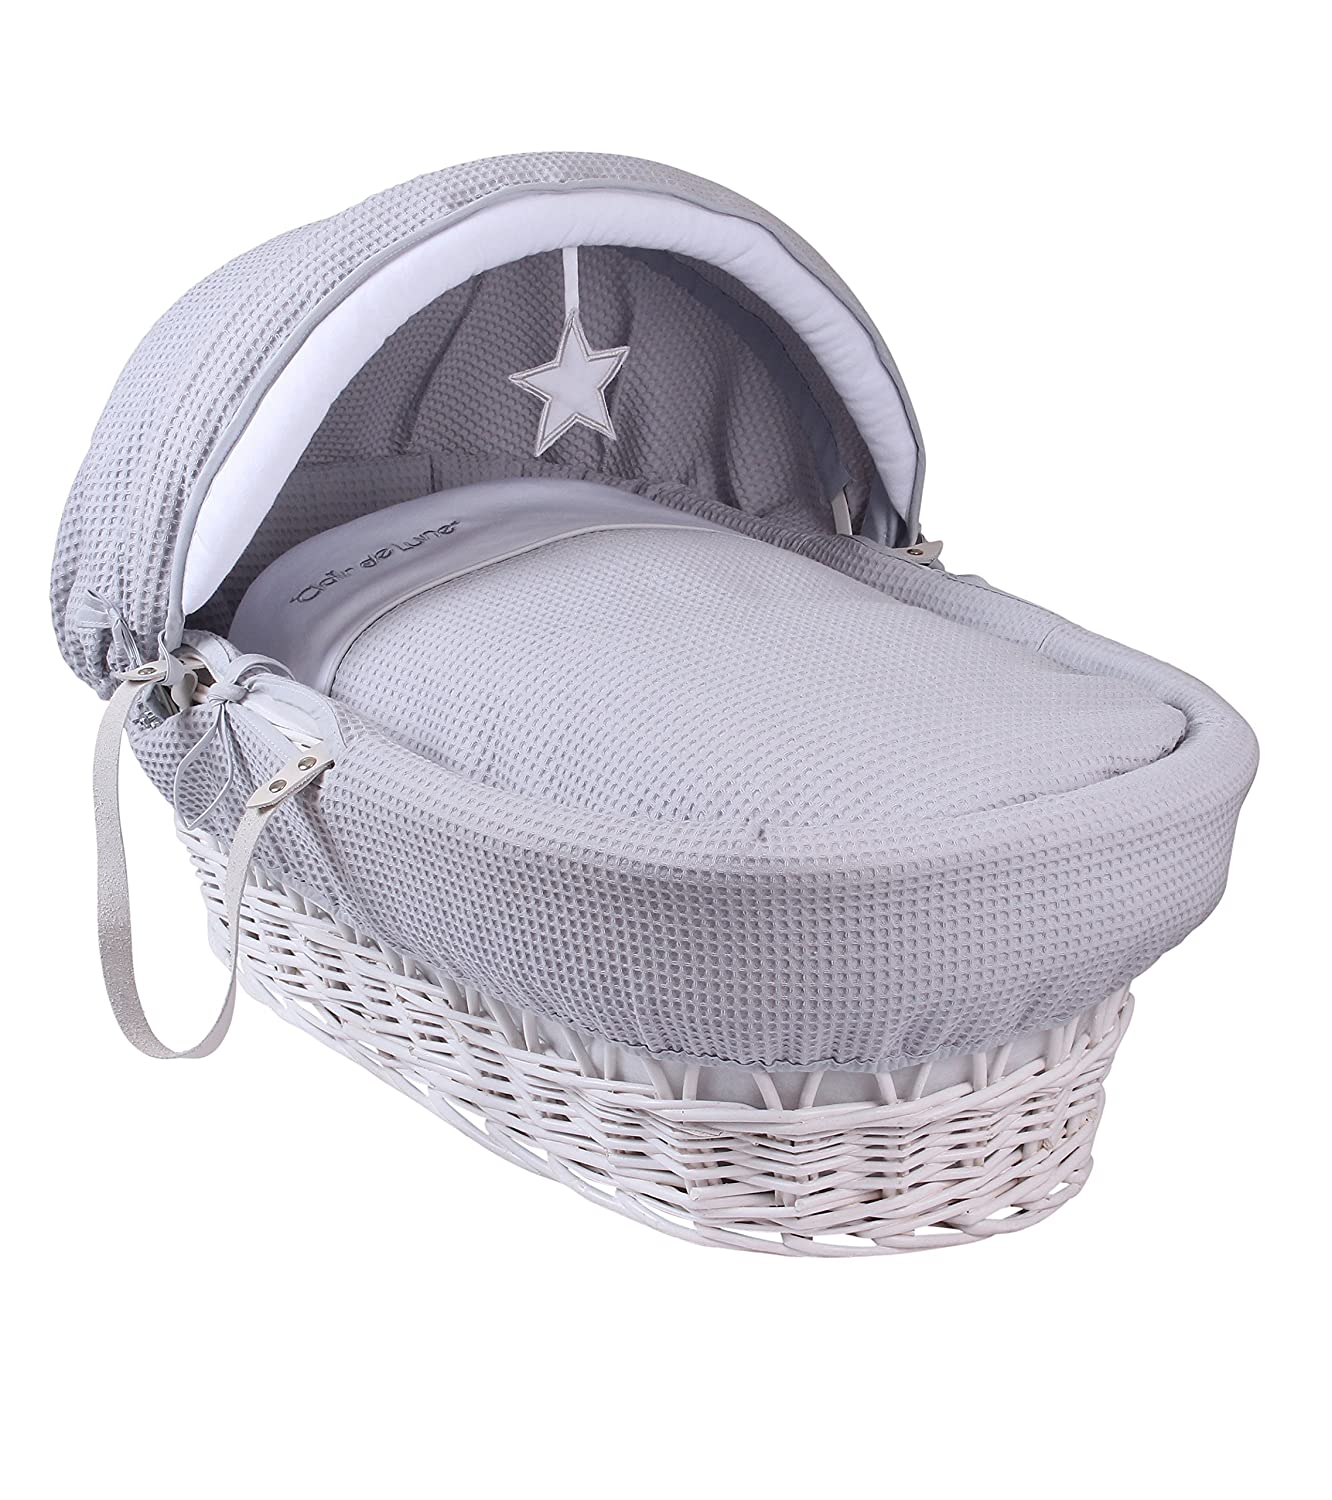 Clair de Lune Silver Lining White Wicker Moses Basket inc. bedding, mattress & adjustable hood (Grey) CL5419WG